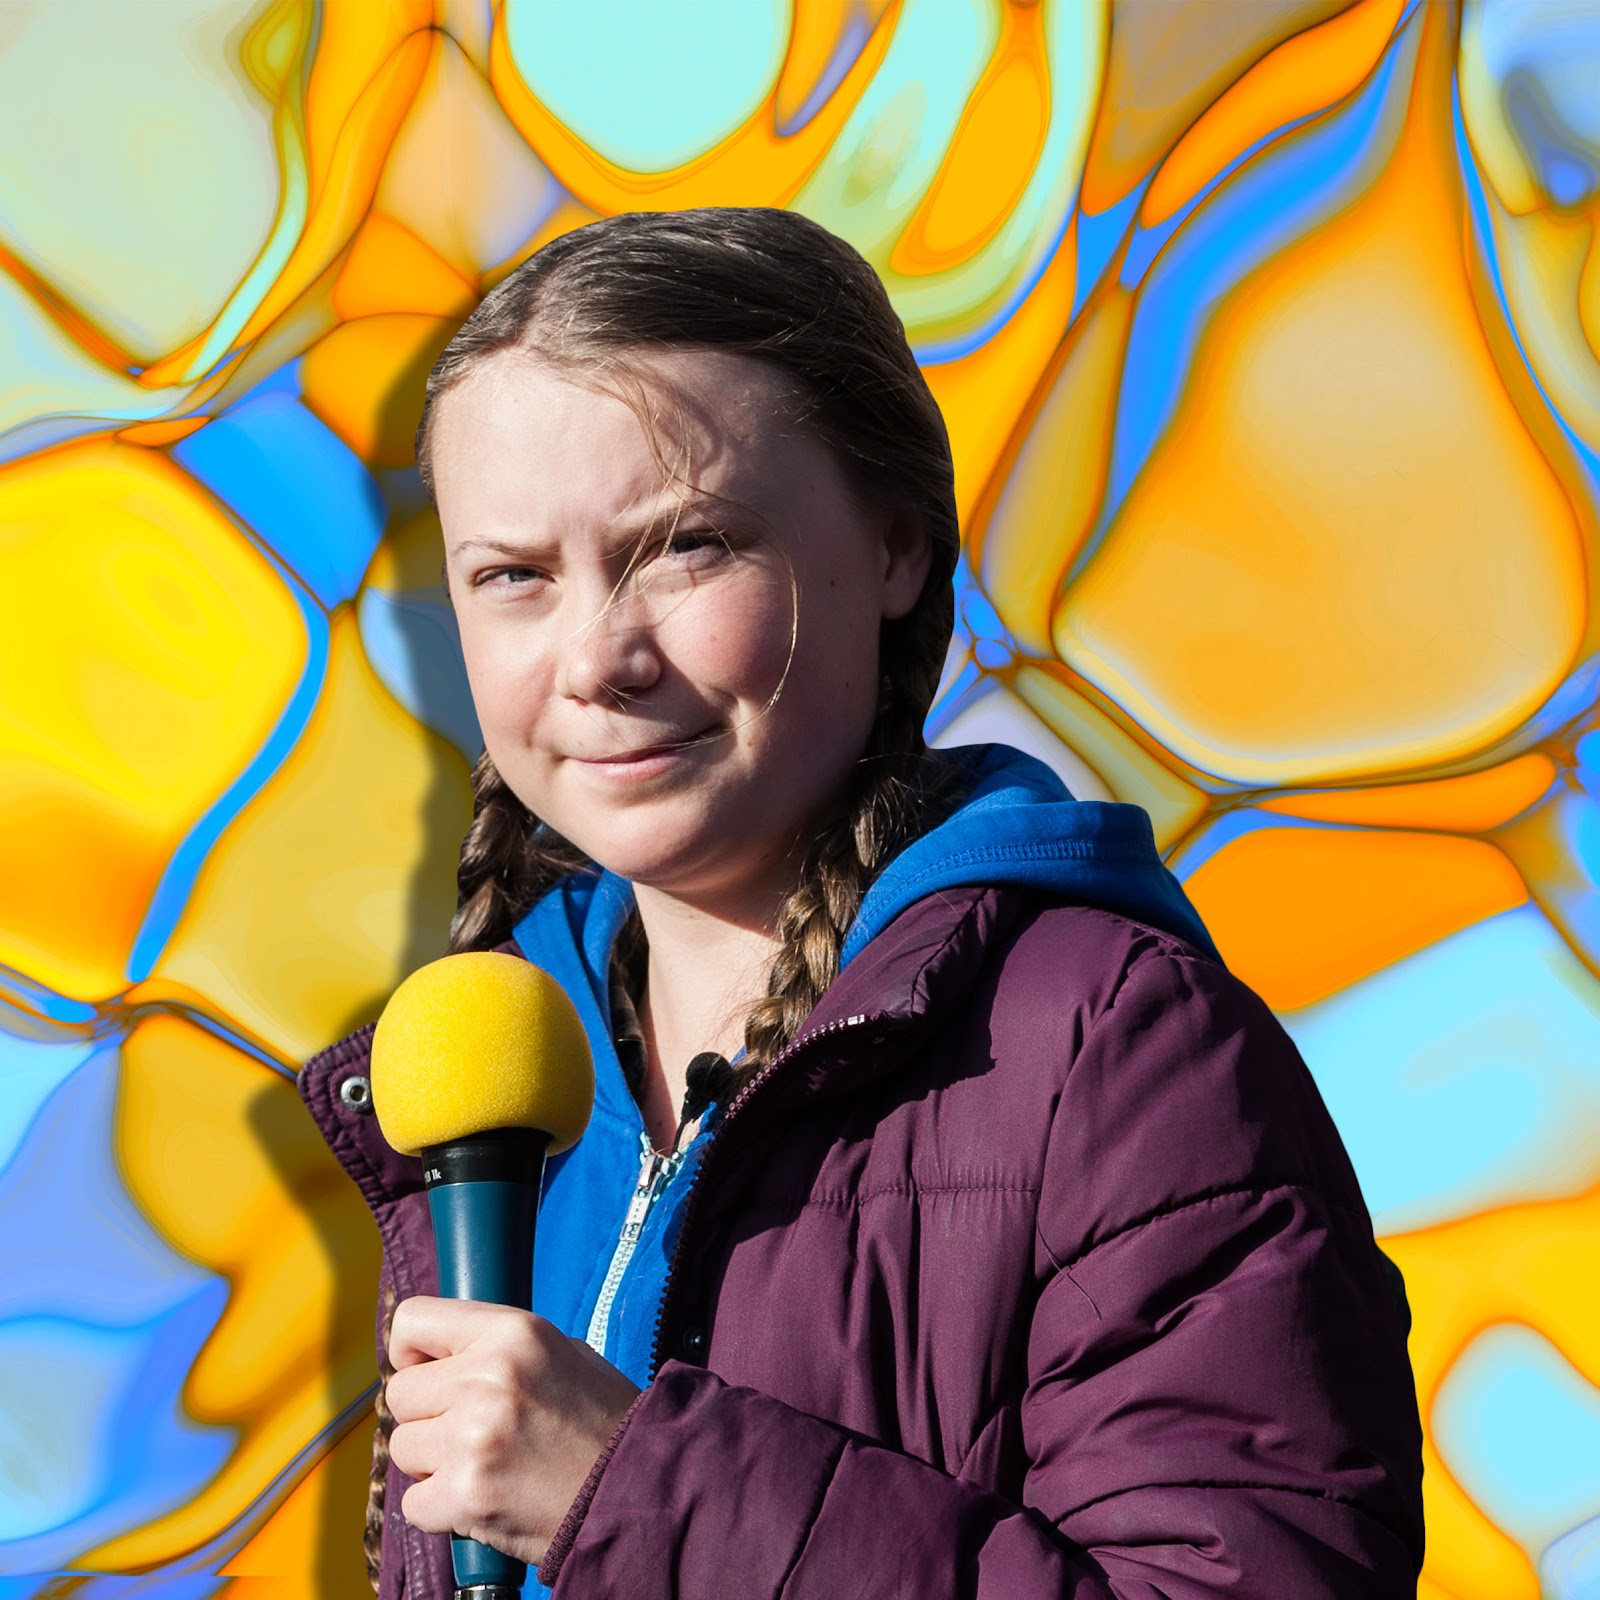 Billedresultat for greta thunberg superstar cartoon